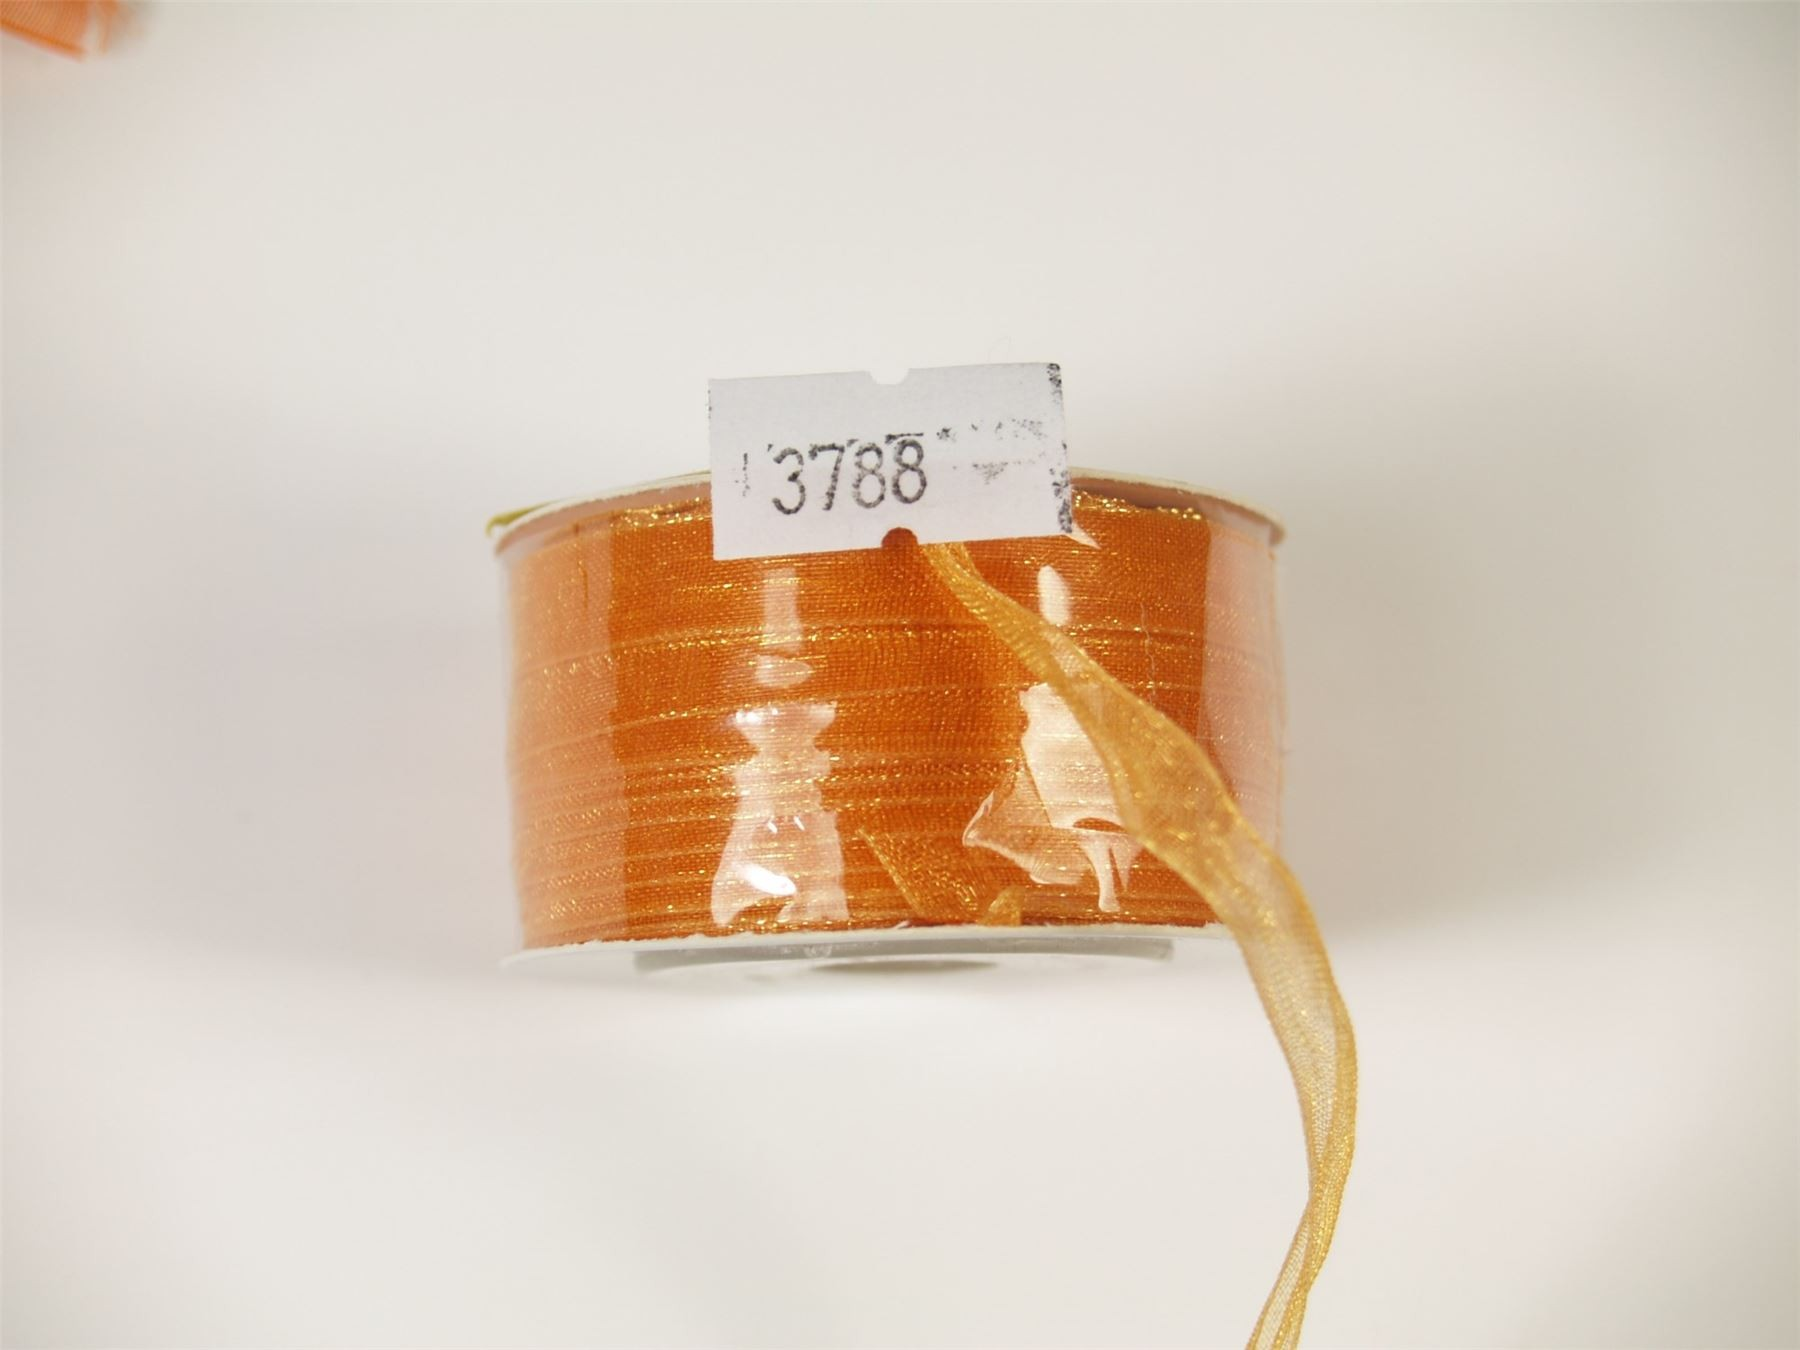 7mm x 30m Organza Ribbon Golden Brown  (3788)